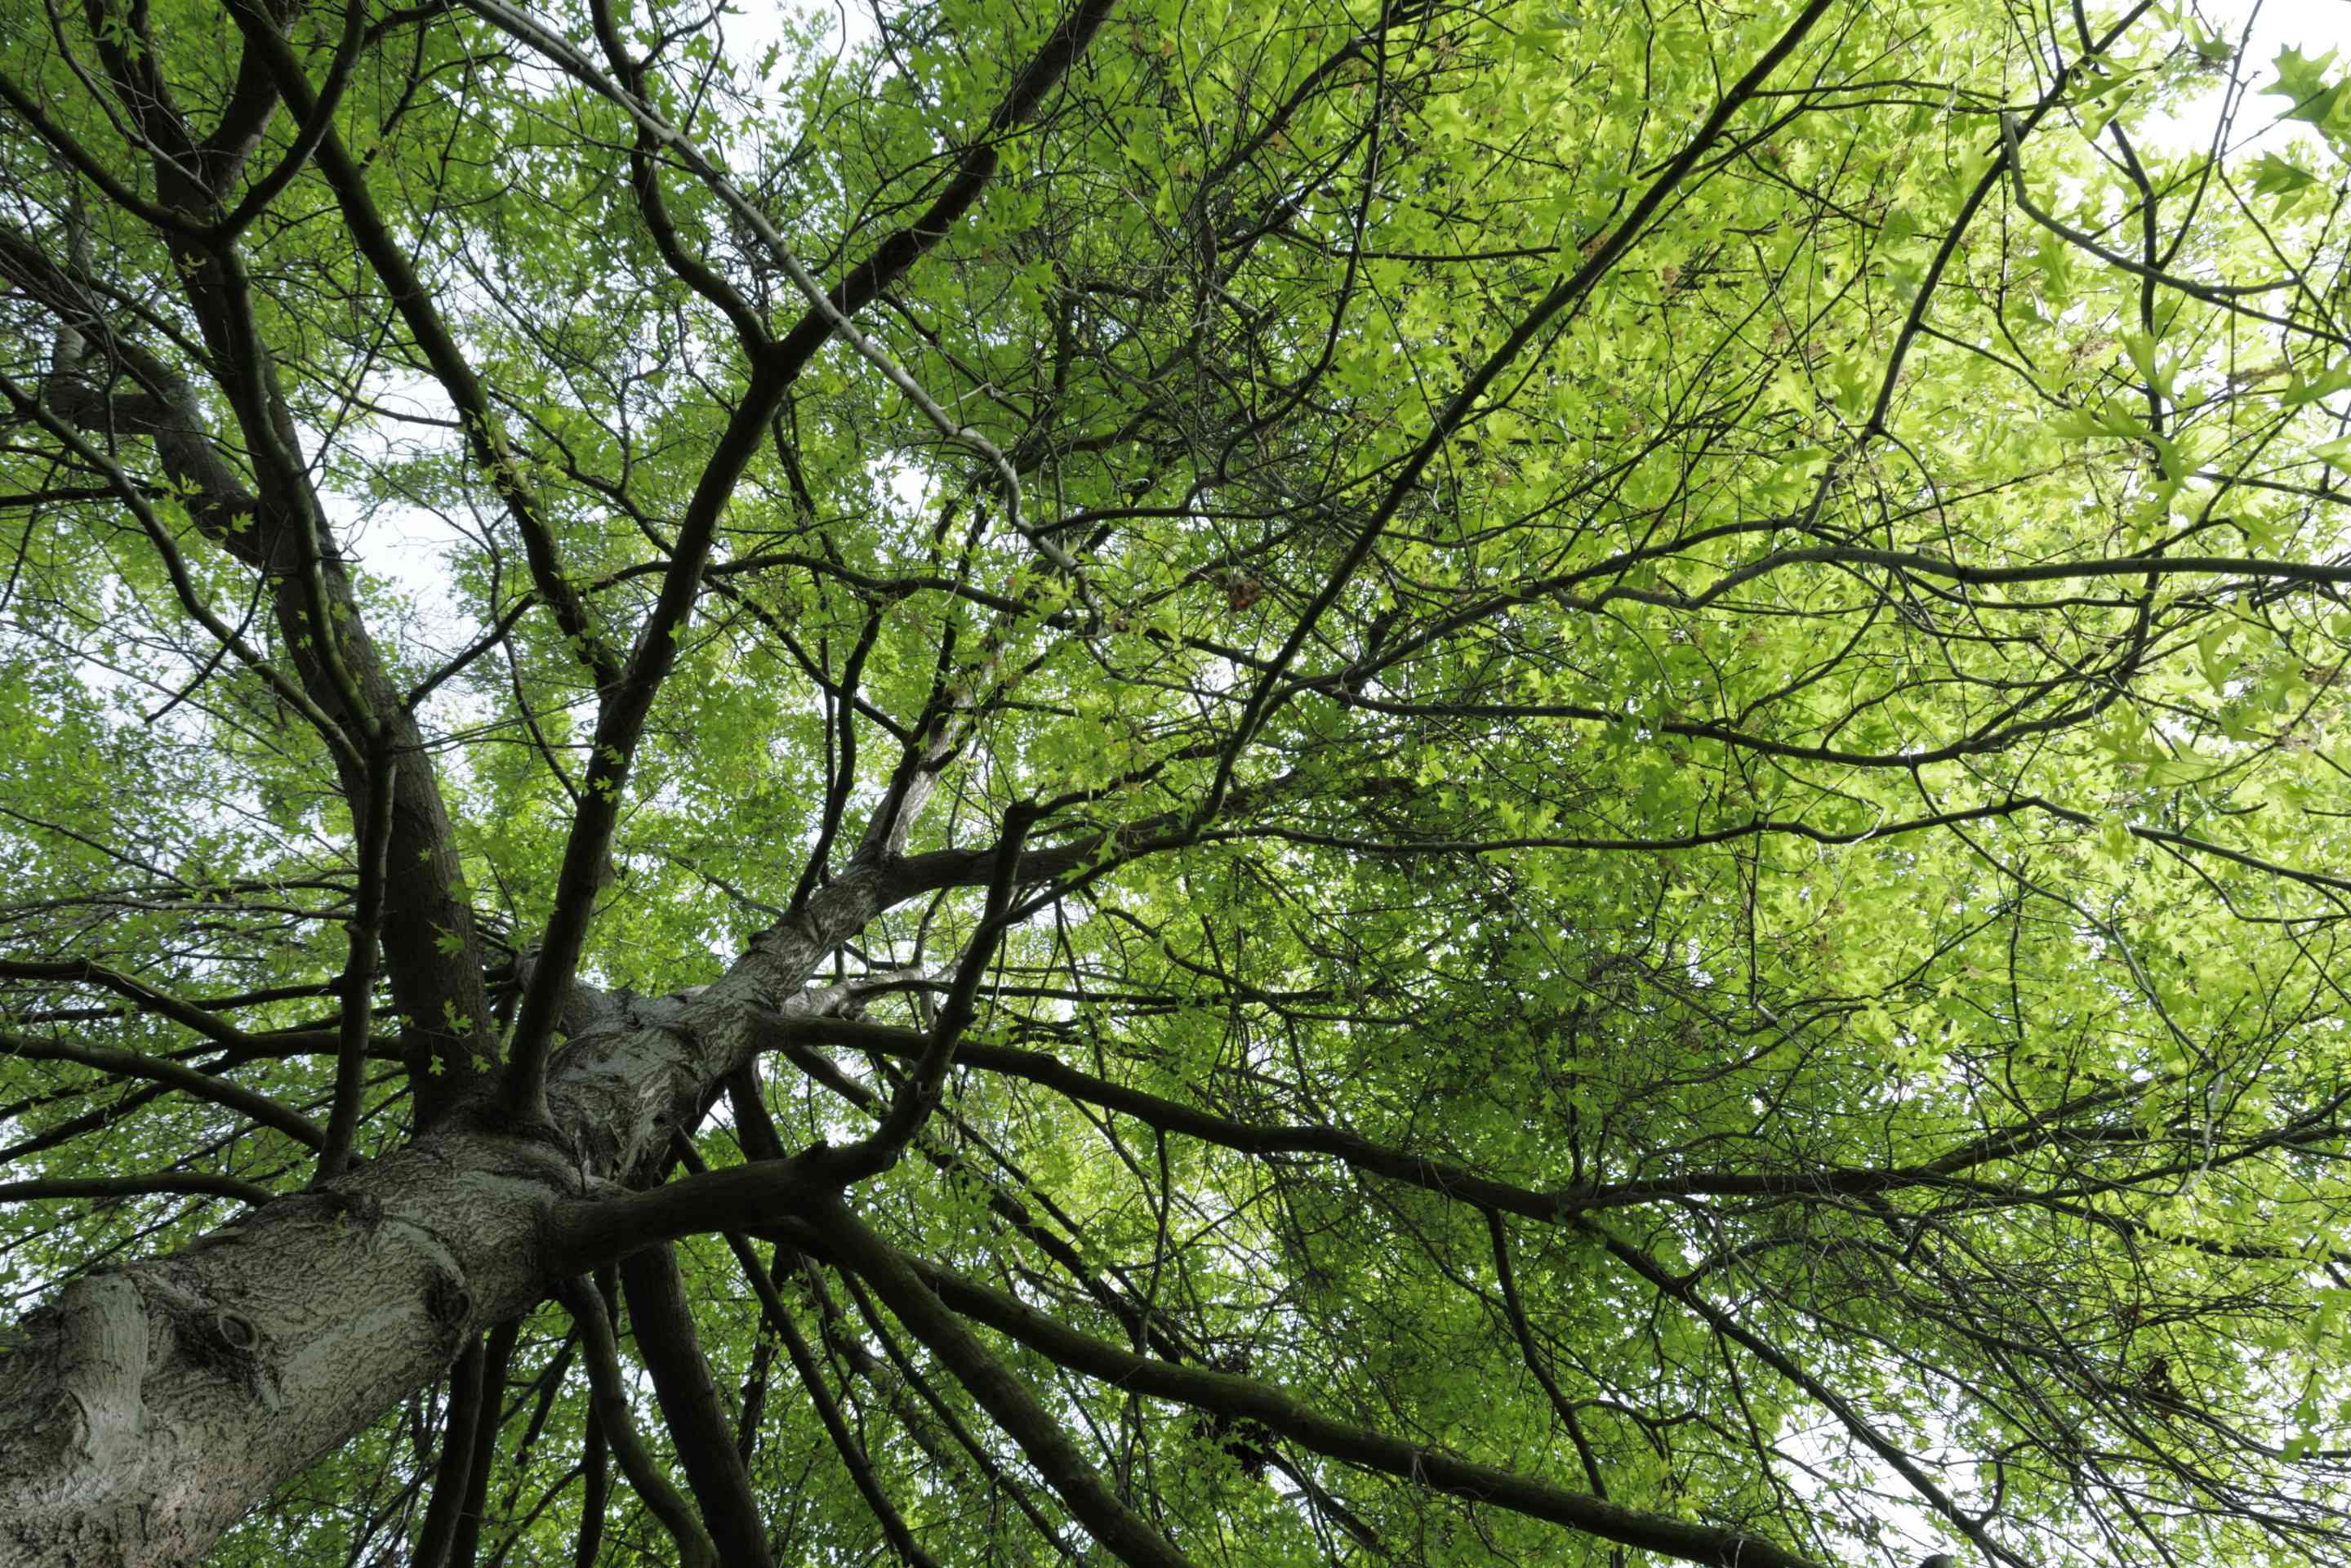 A shot looking up at a mature large Pin Oak tree with green leaves.